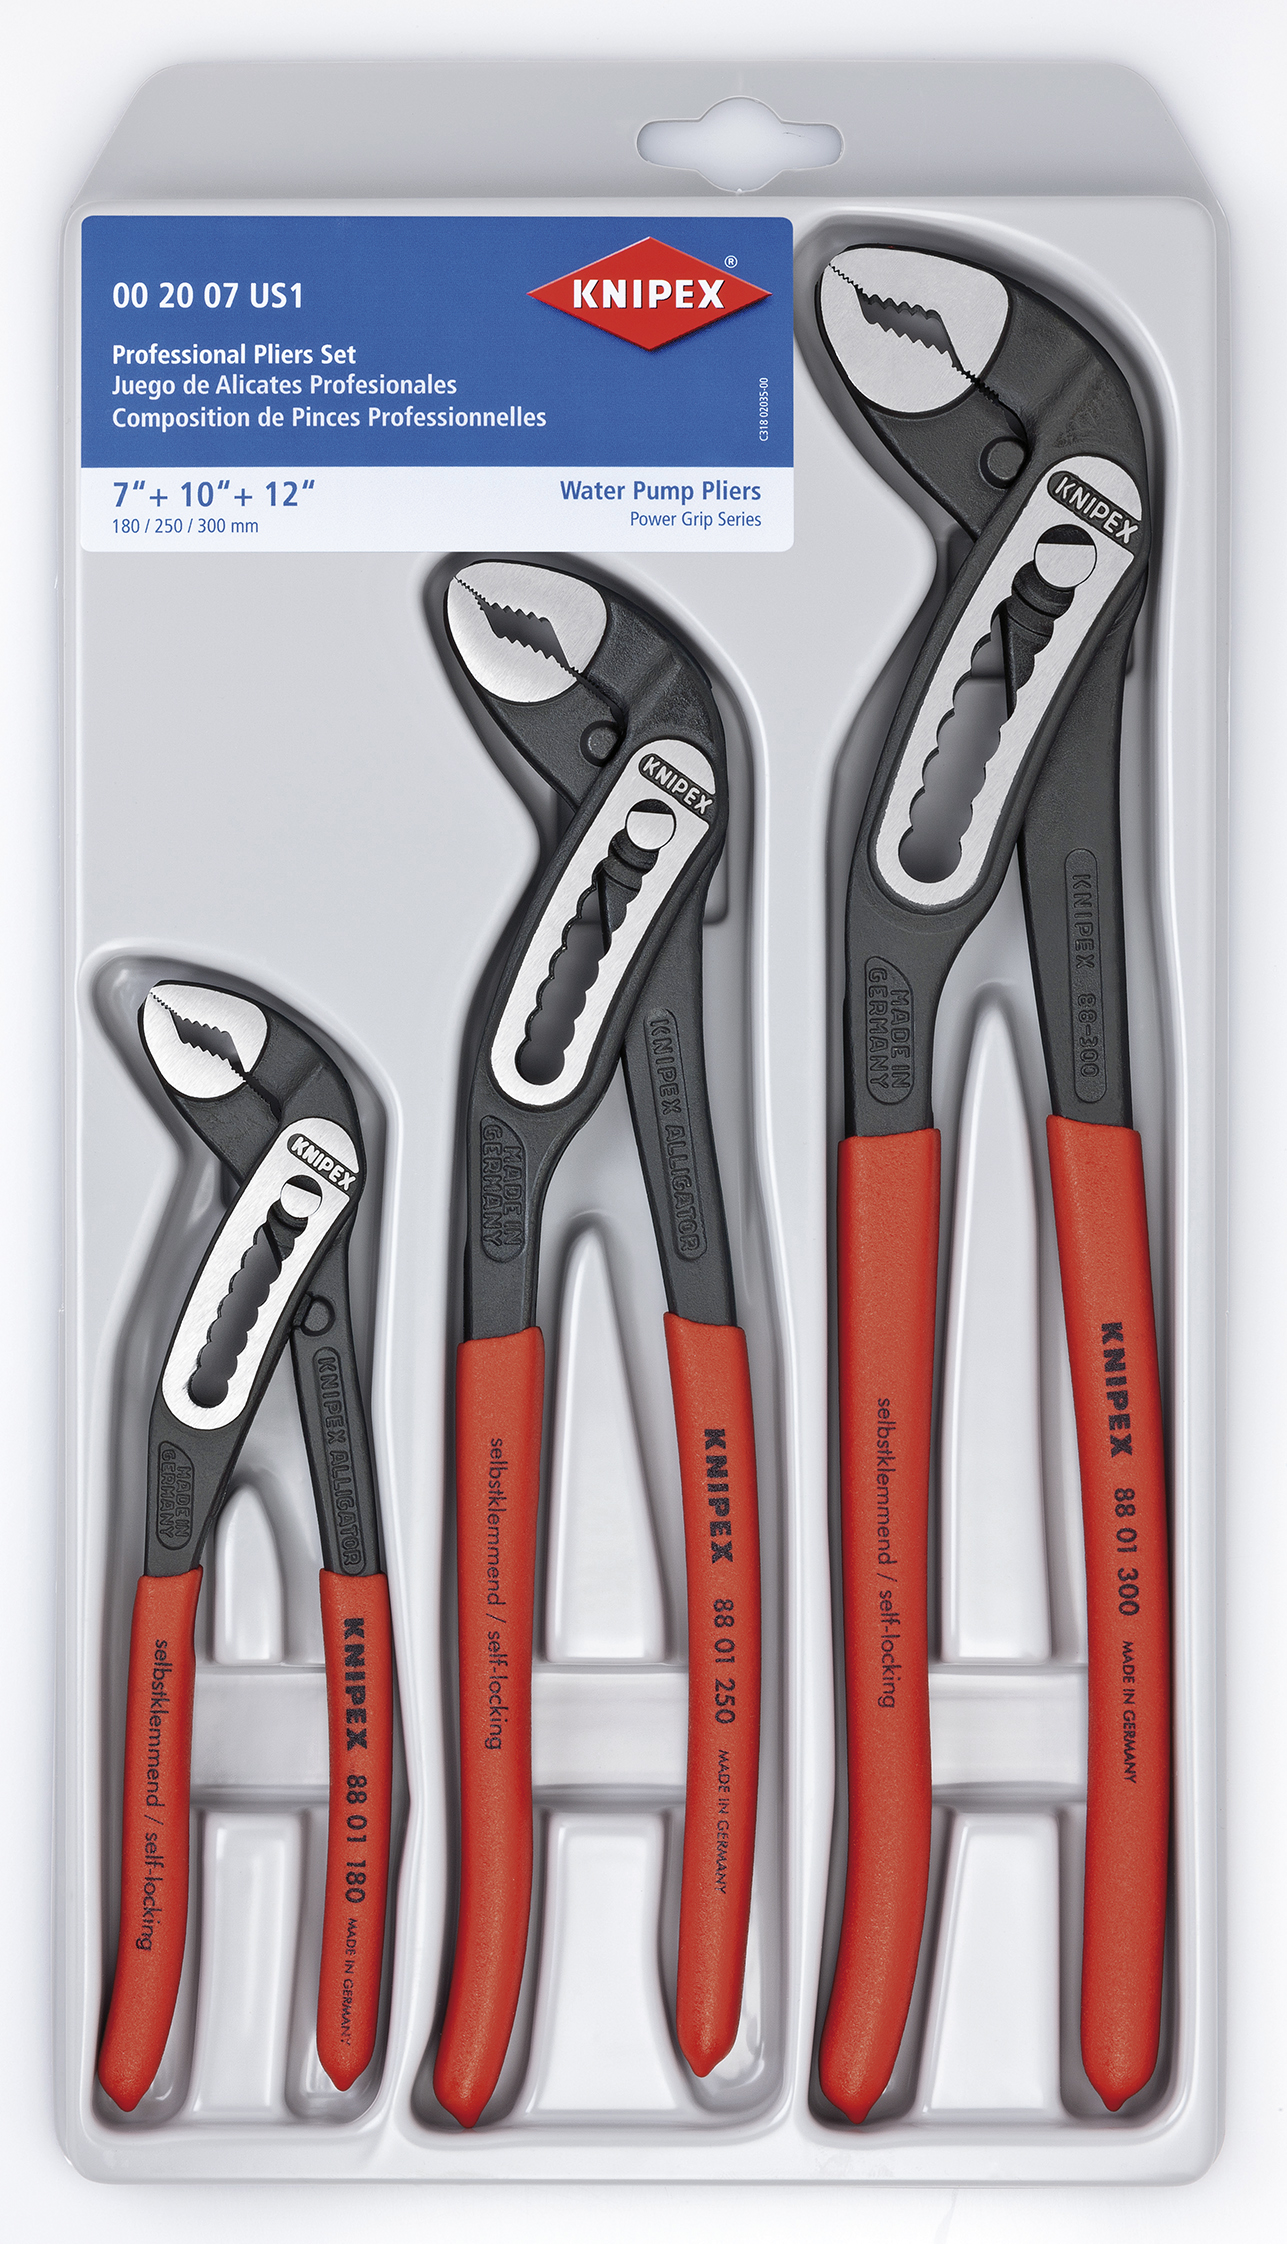 KNIPEX Tools 00 20 07 US1, Alligator Pliers 7, 10, and 12-Inch Set, 3-Piece by KNIPEX Tools